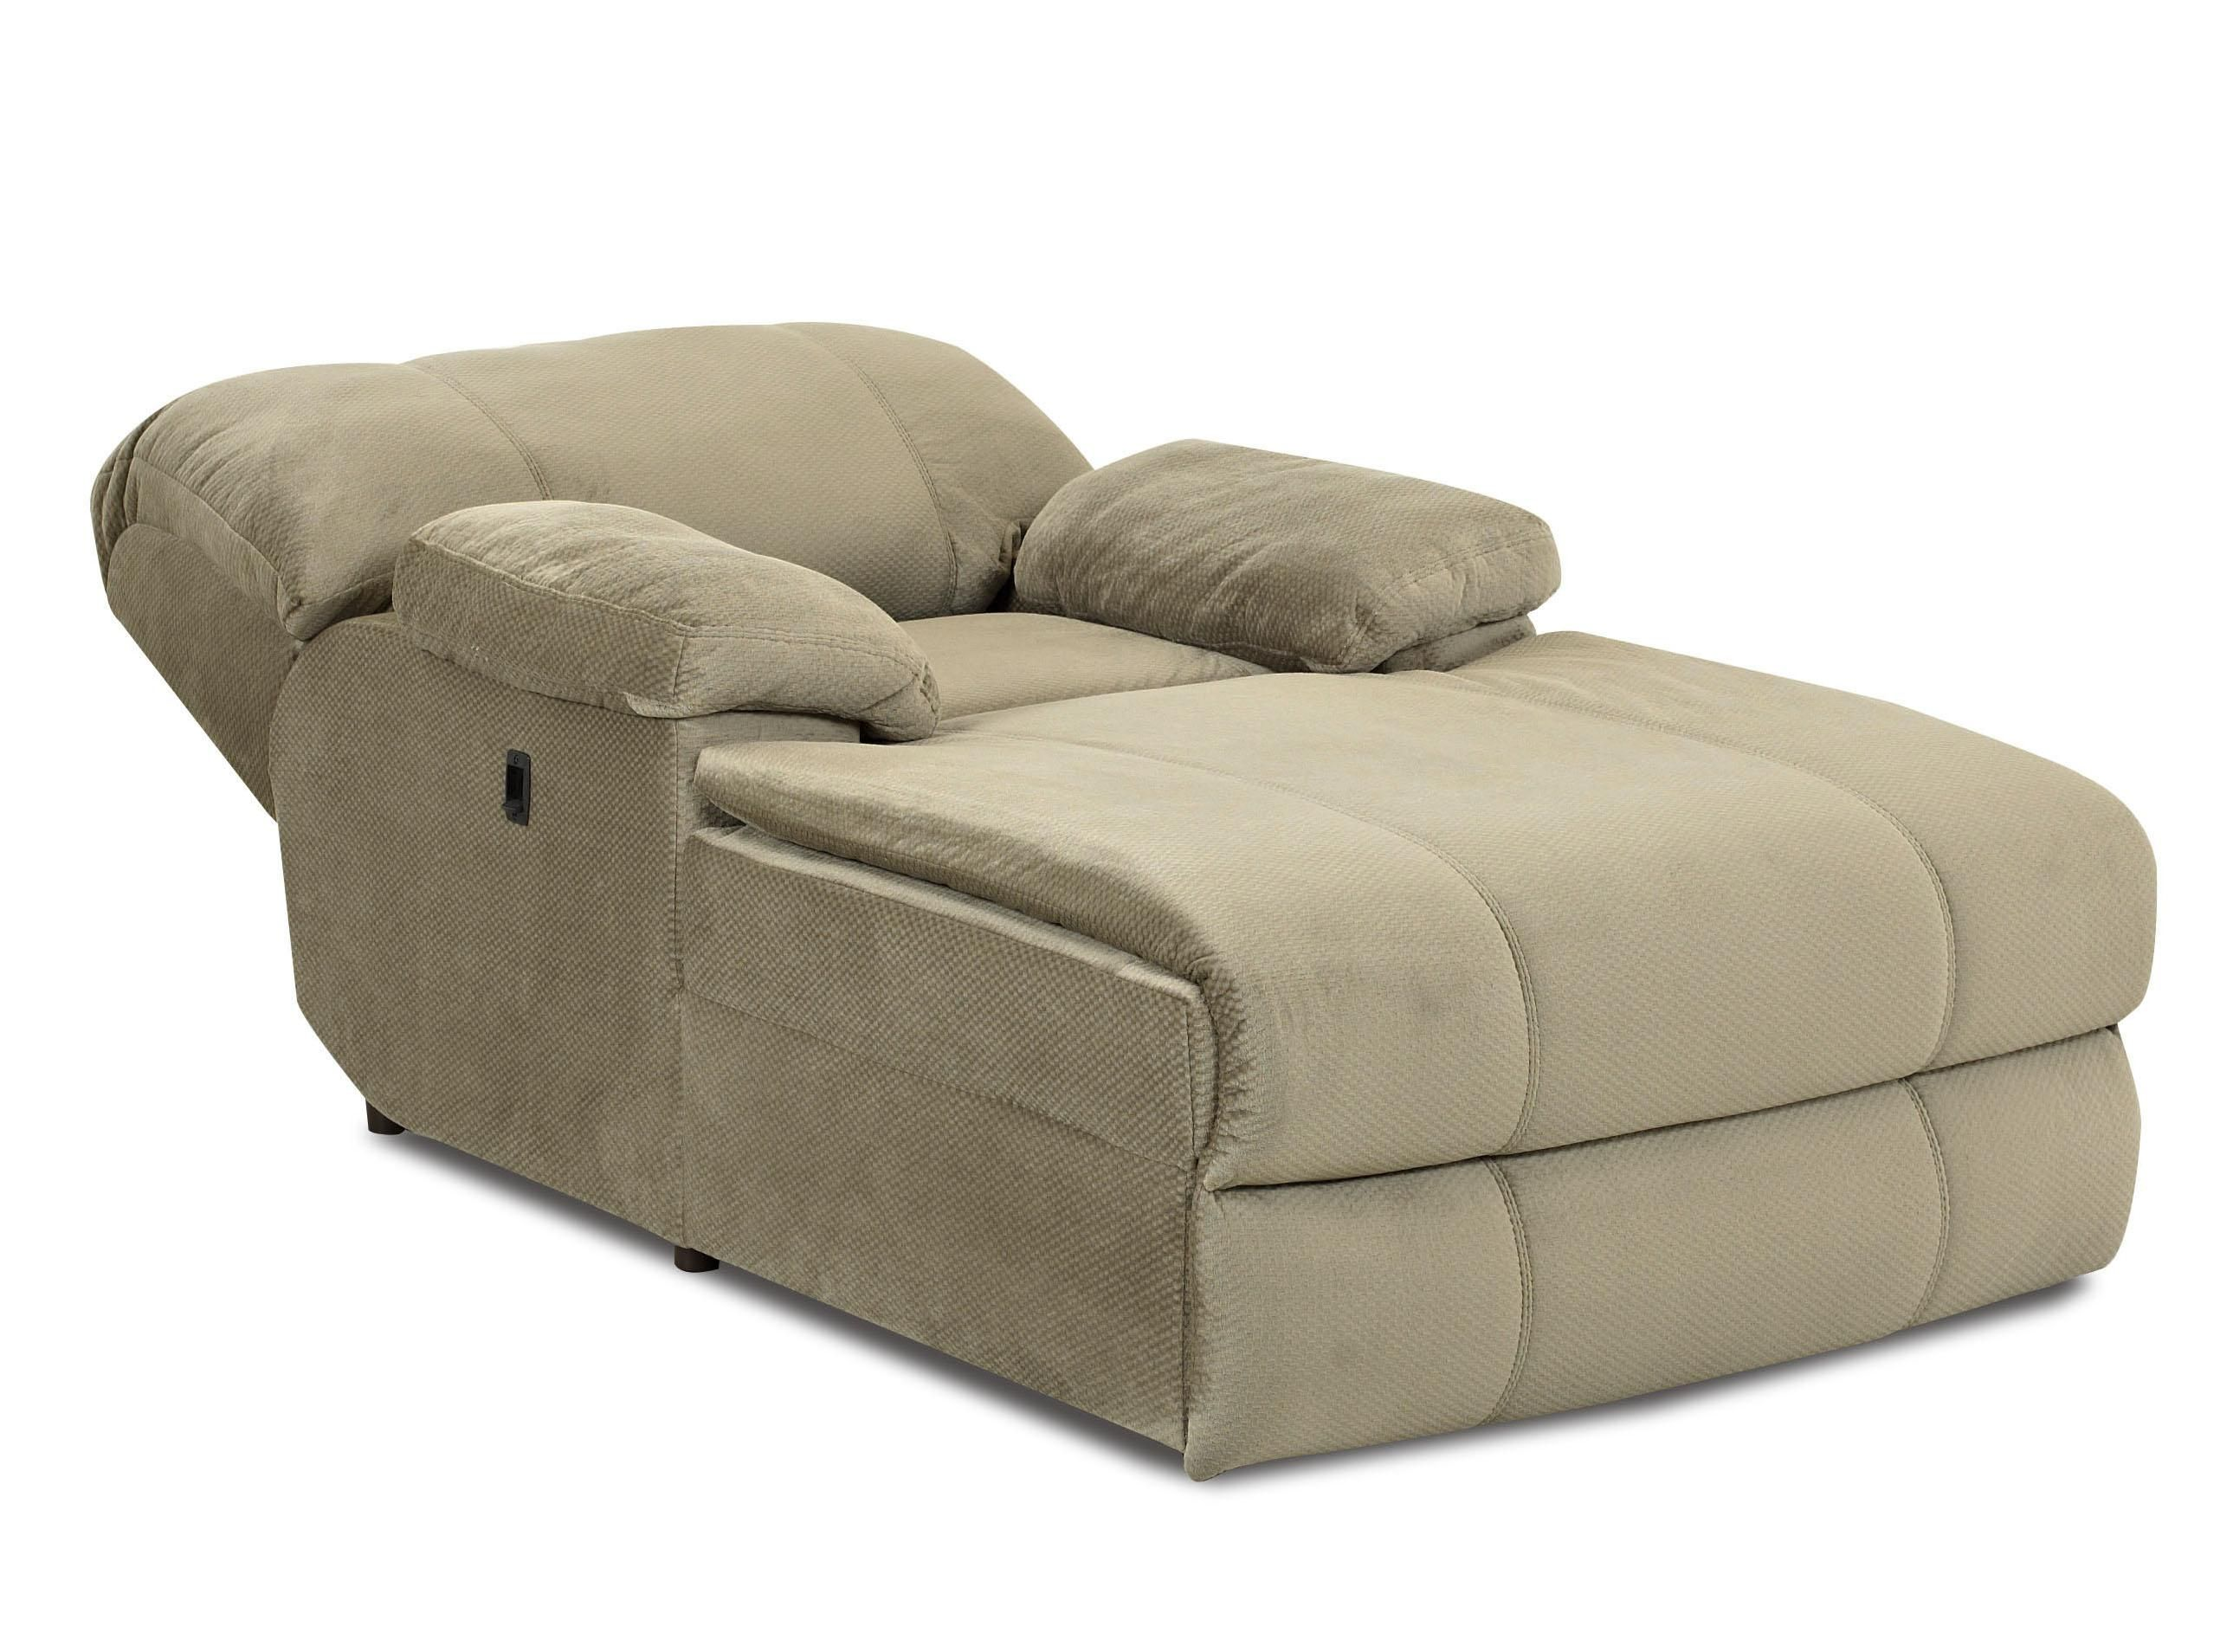 best com ip chaise walmart sun redwood wide lounge